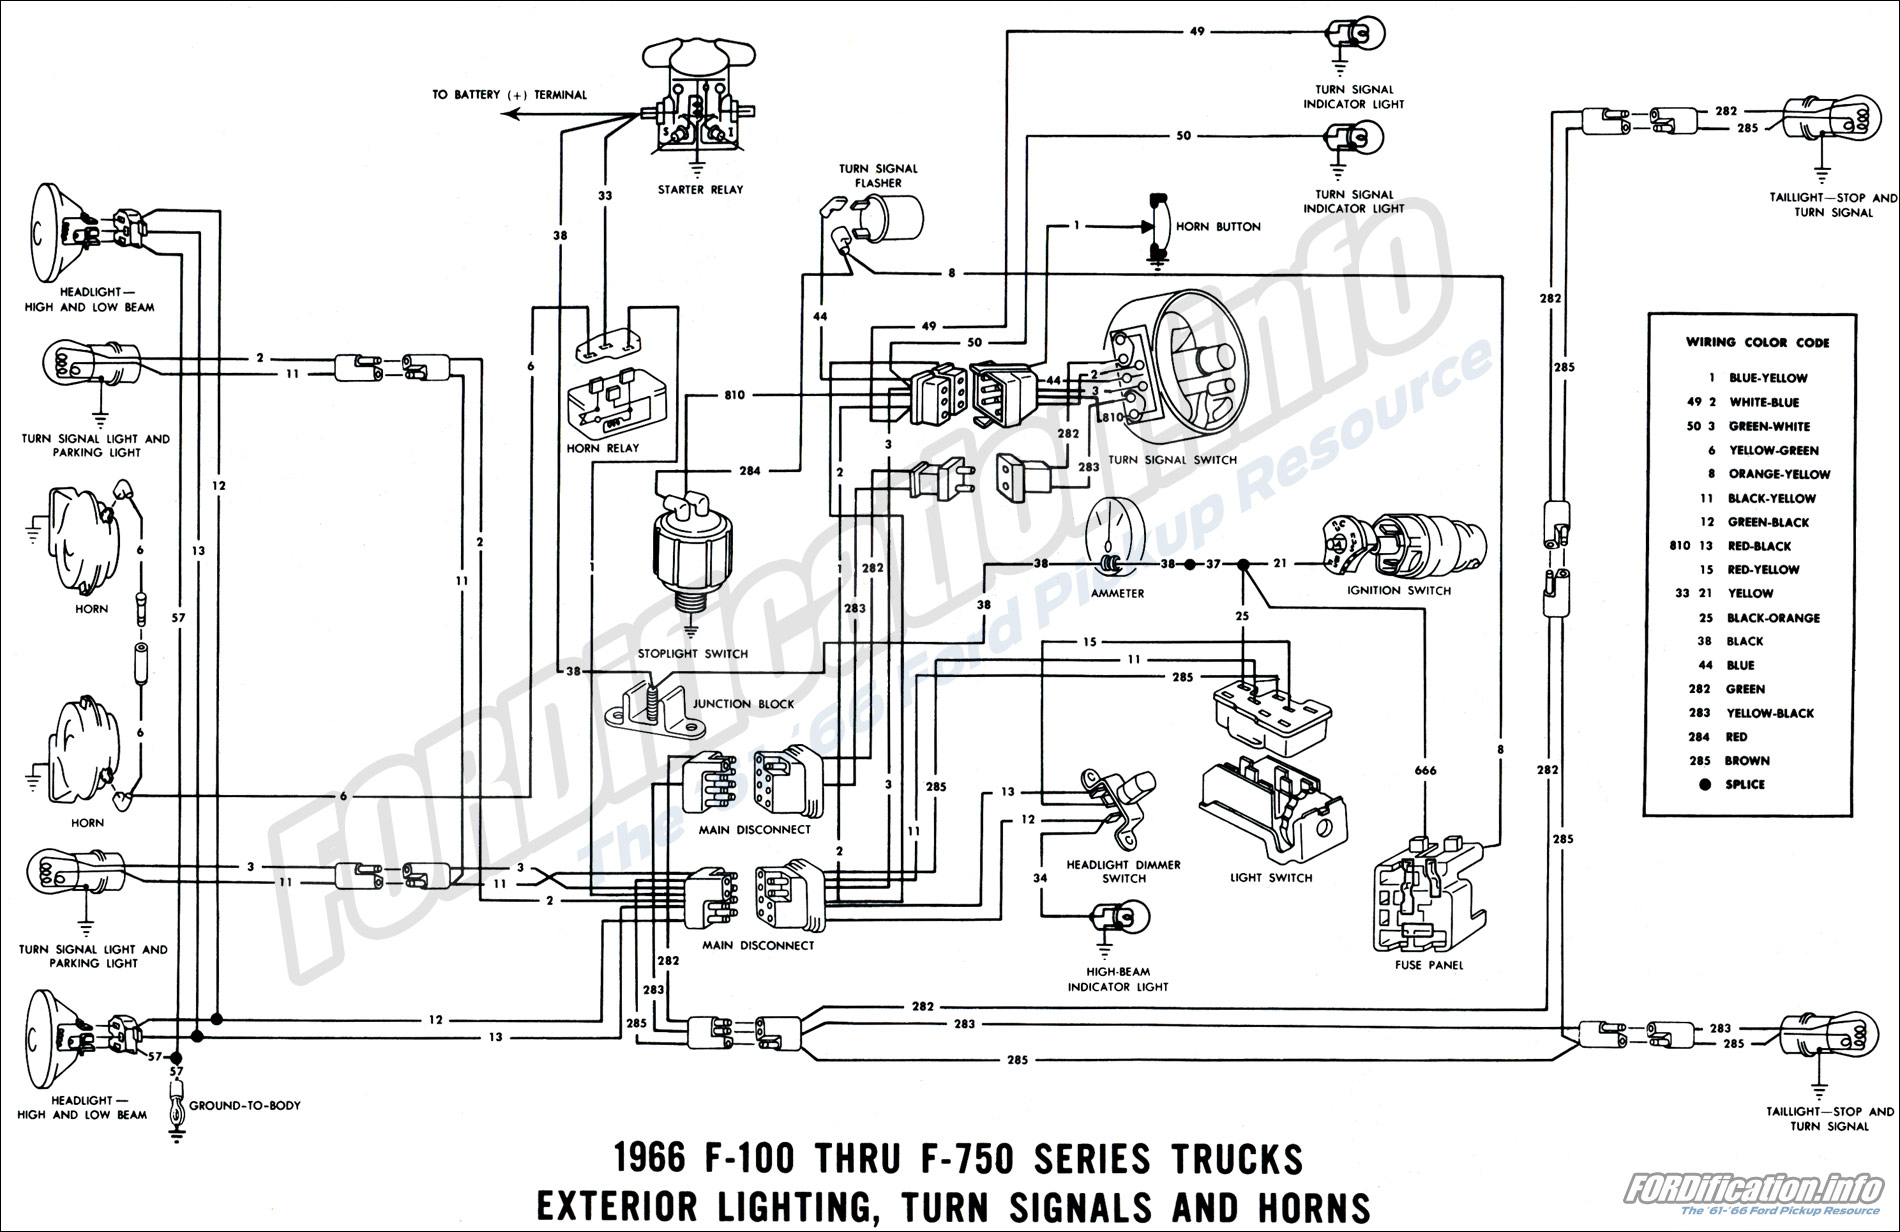 1976 Ford F150 Wiring Diagram from fordification.info